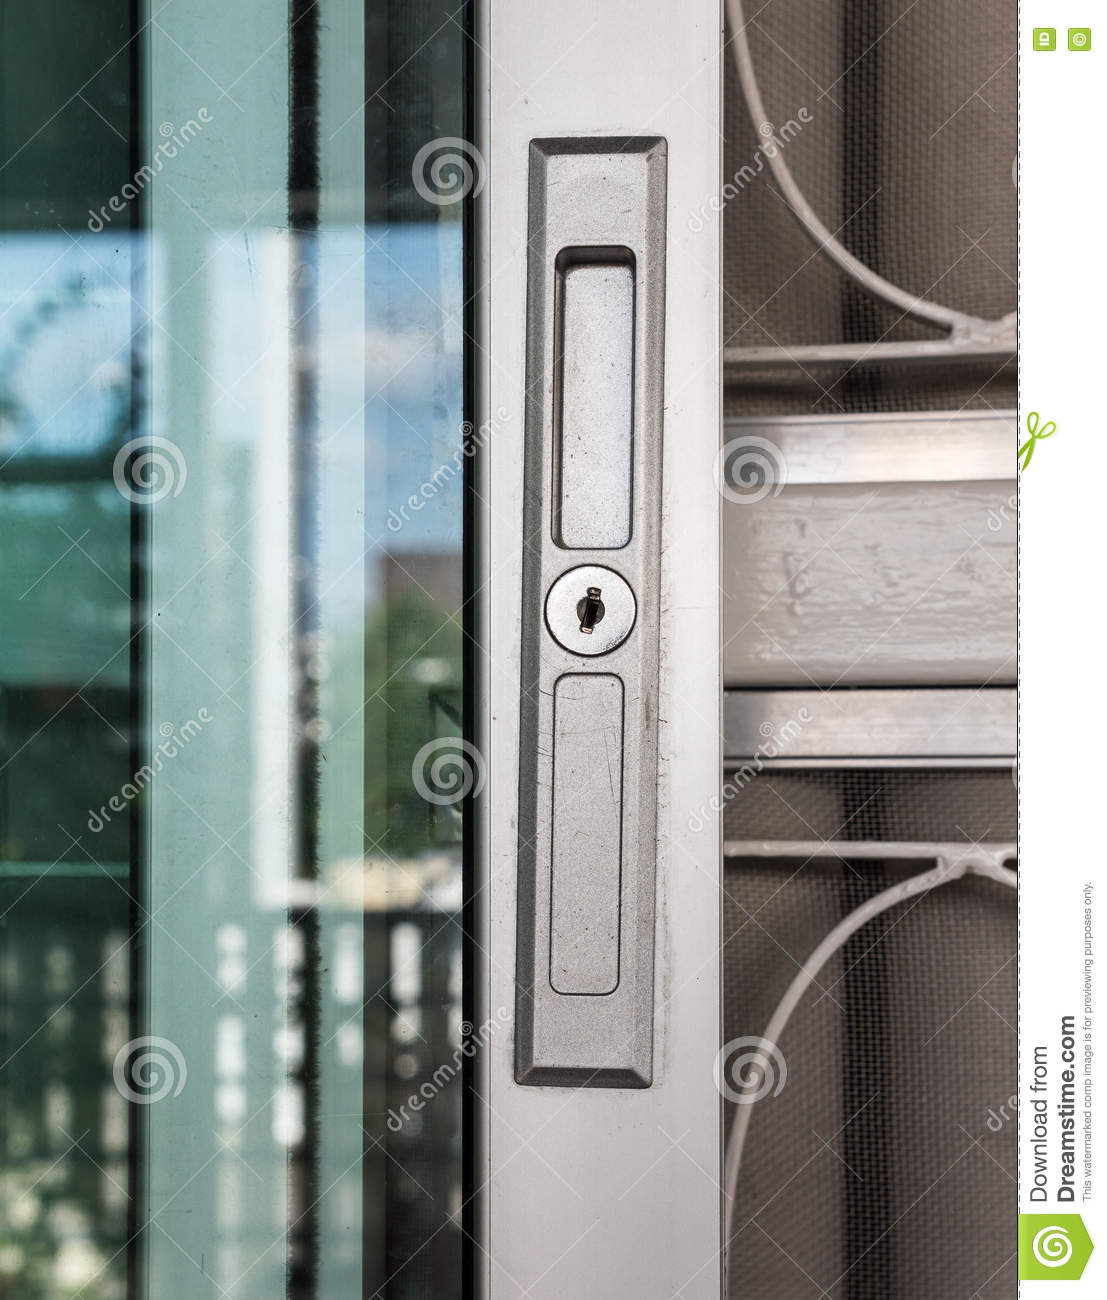 Keyhole On The Metal Frame Stock Image Image Of Front Lock 78116797